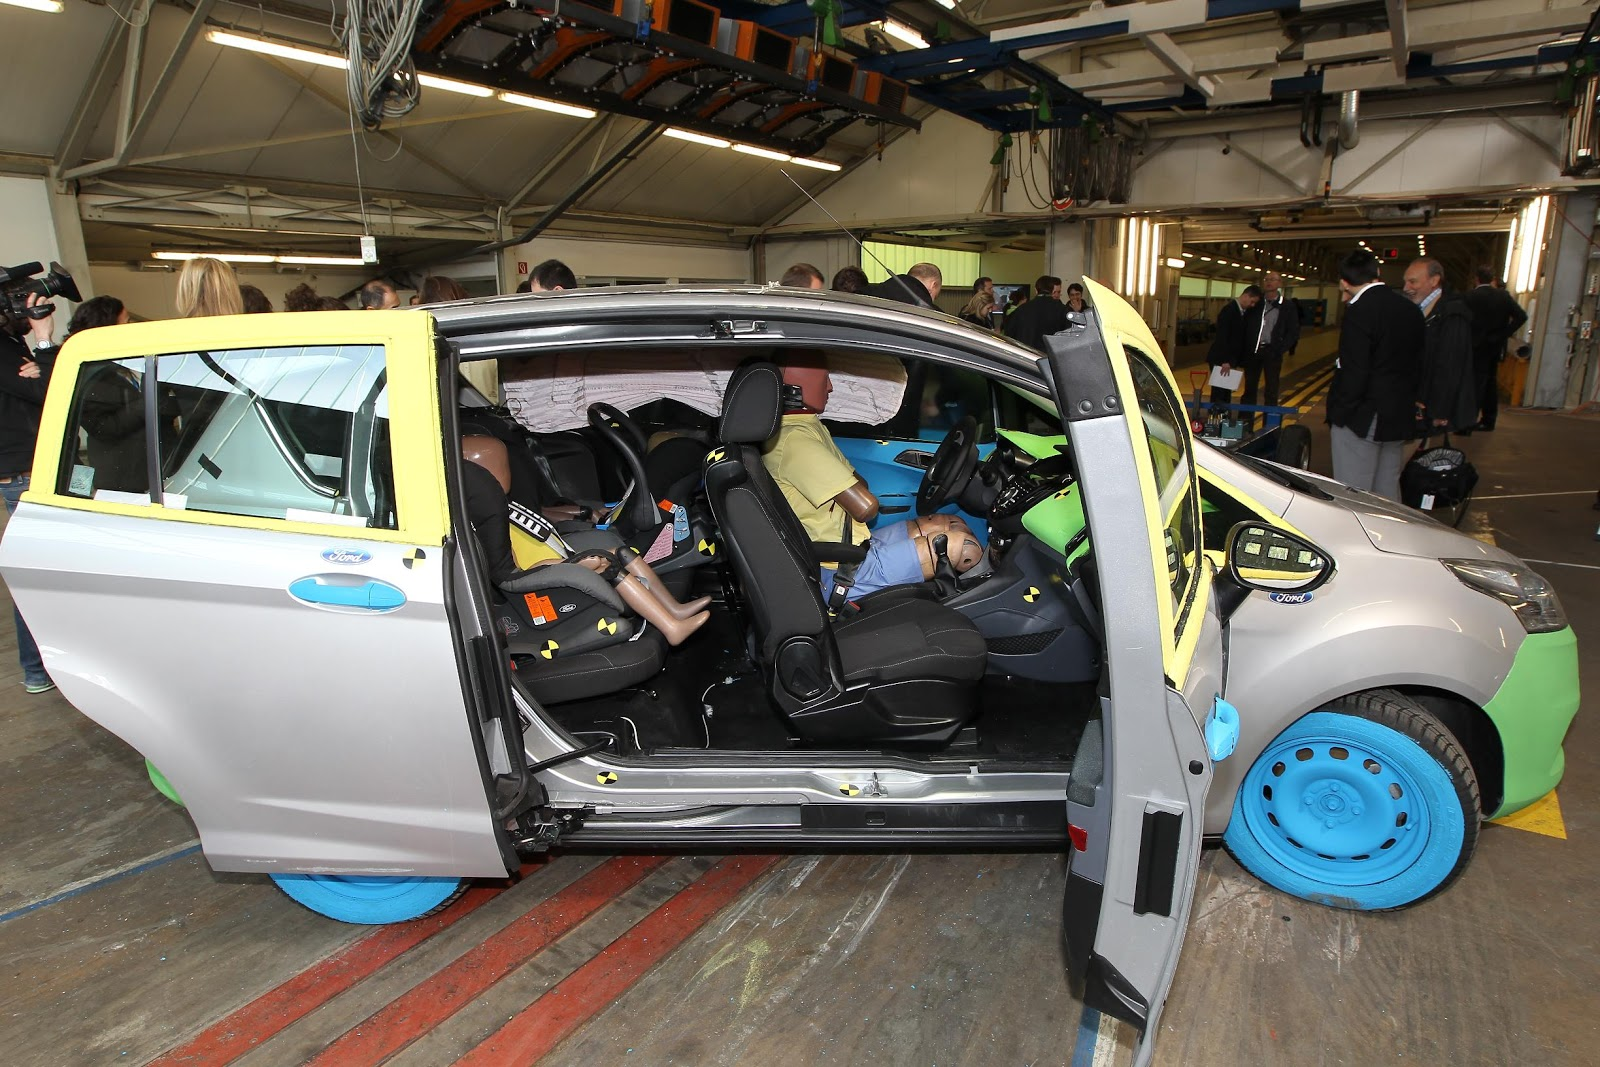 Platts hyundai used car dealership in high wycombe - Unique Crash Test Procedure Ensures Ford B Max Door System Is As Safe As It Is Innovative